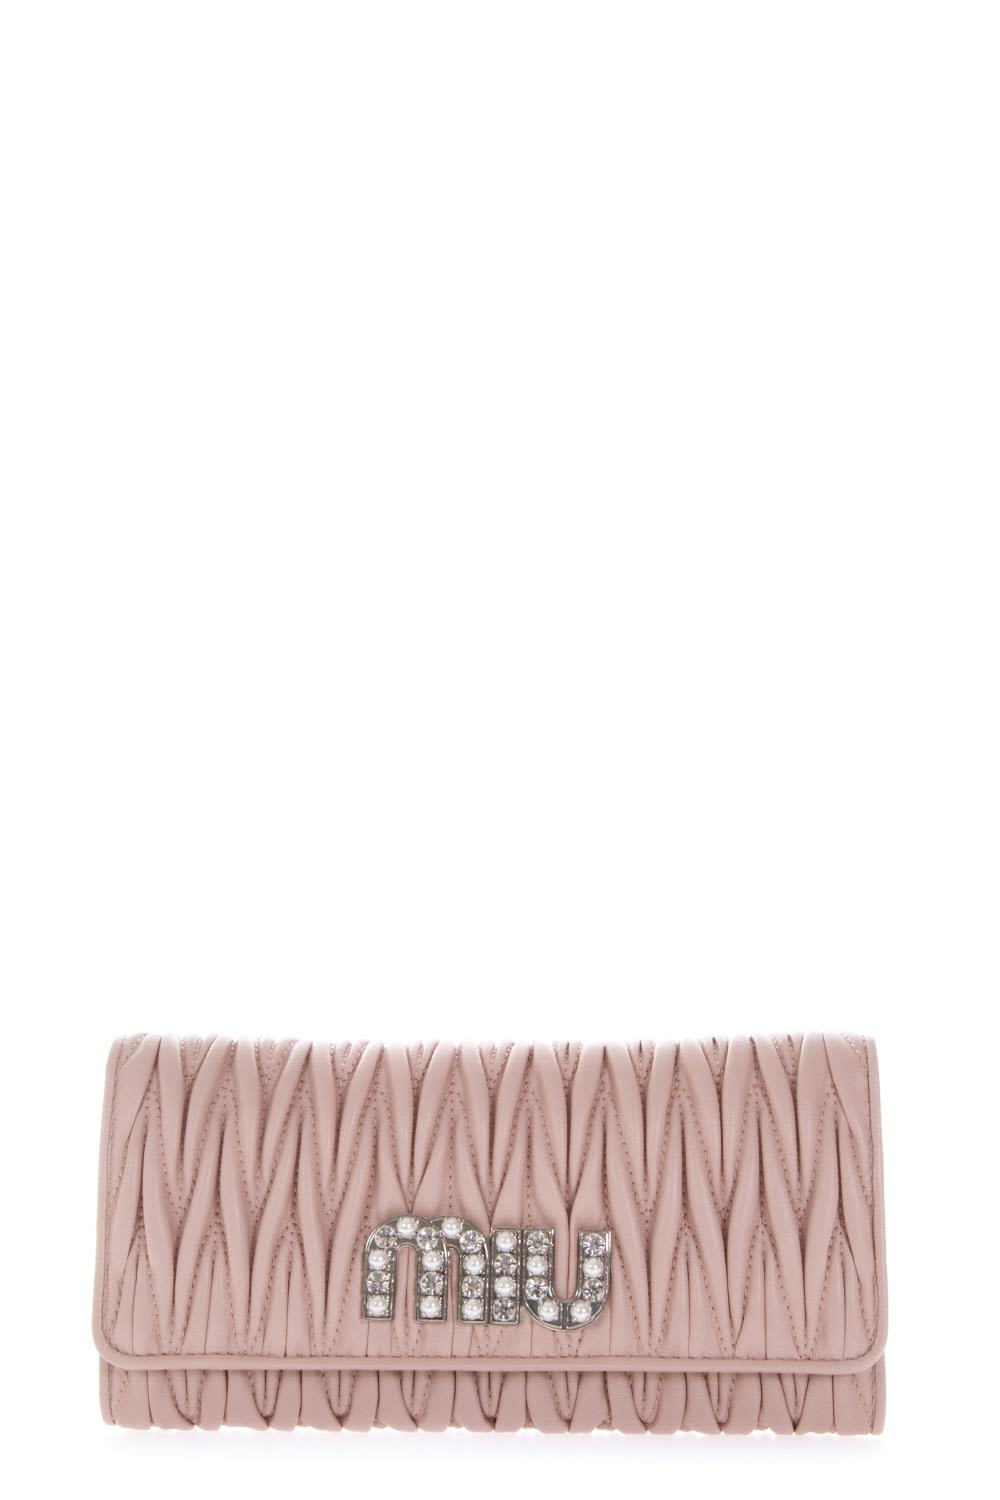 MIU MIU EMBELLISHED LOGO QUILTED ORCHID LEATHER WALLET